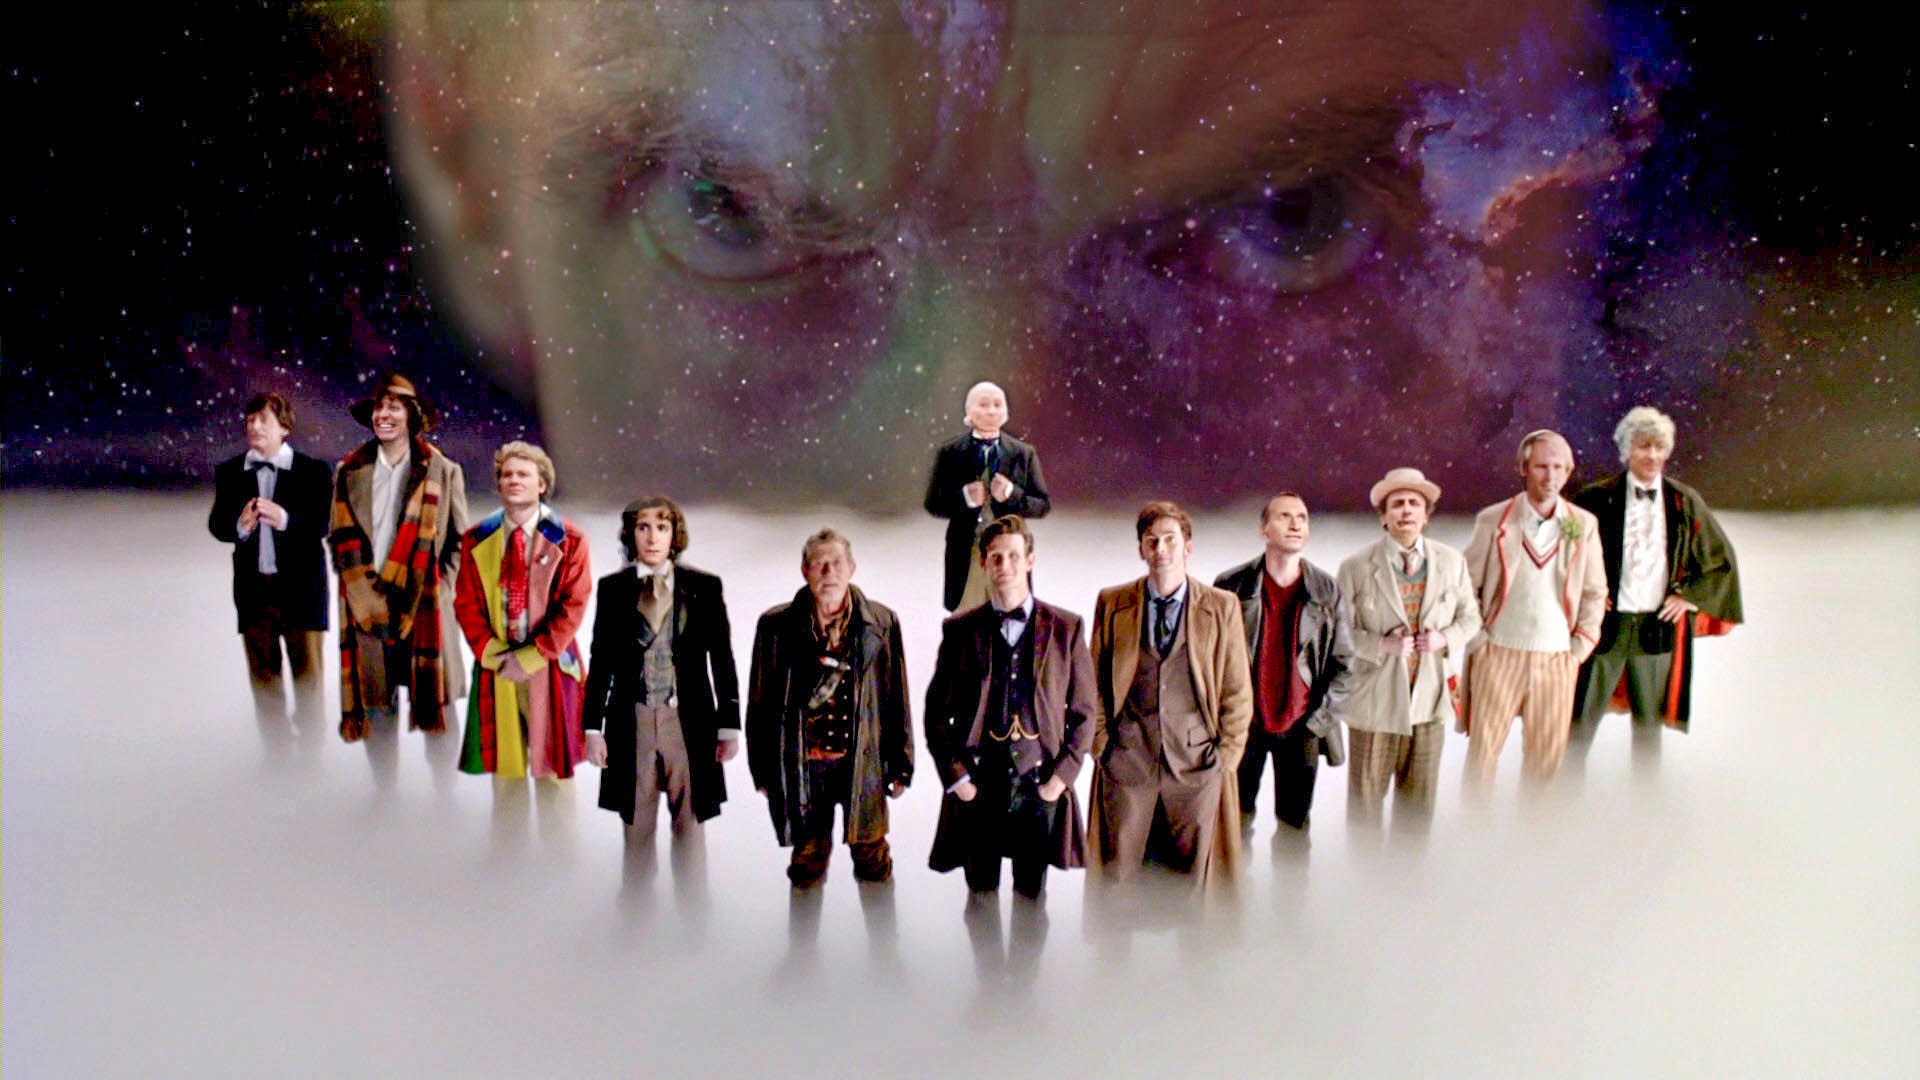 … Doctor Who (10) …